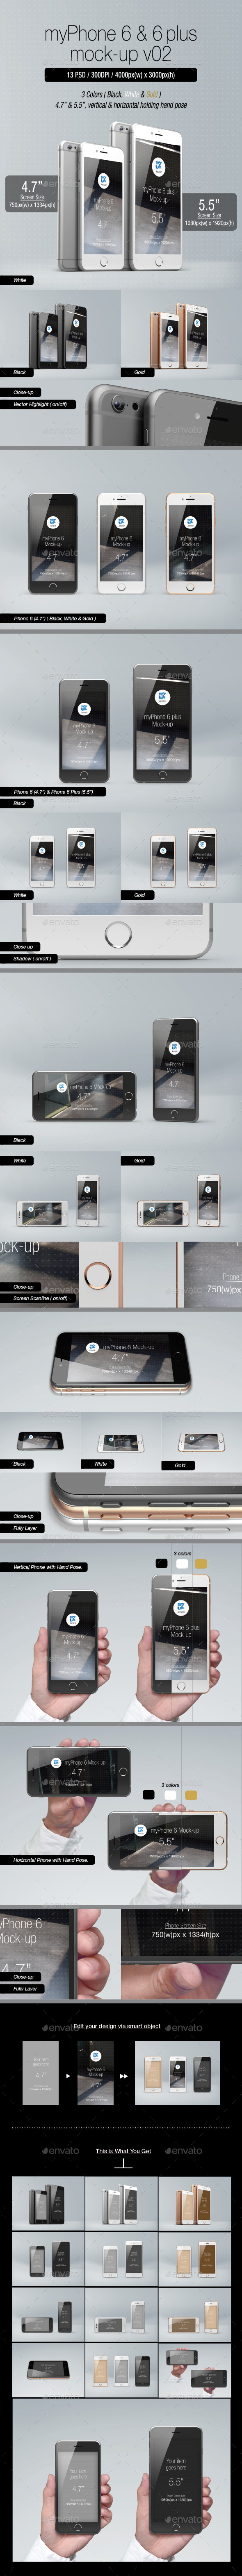 myPhone 6 Mock-up v02